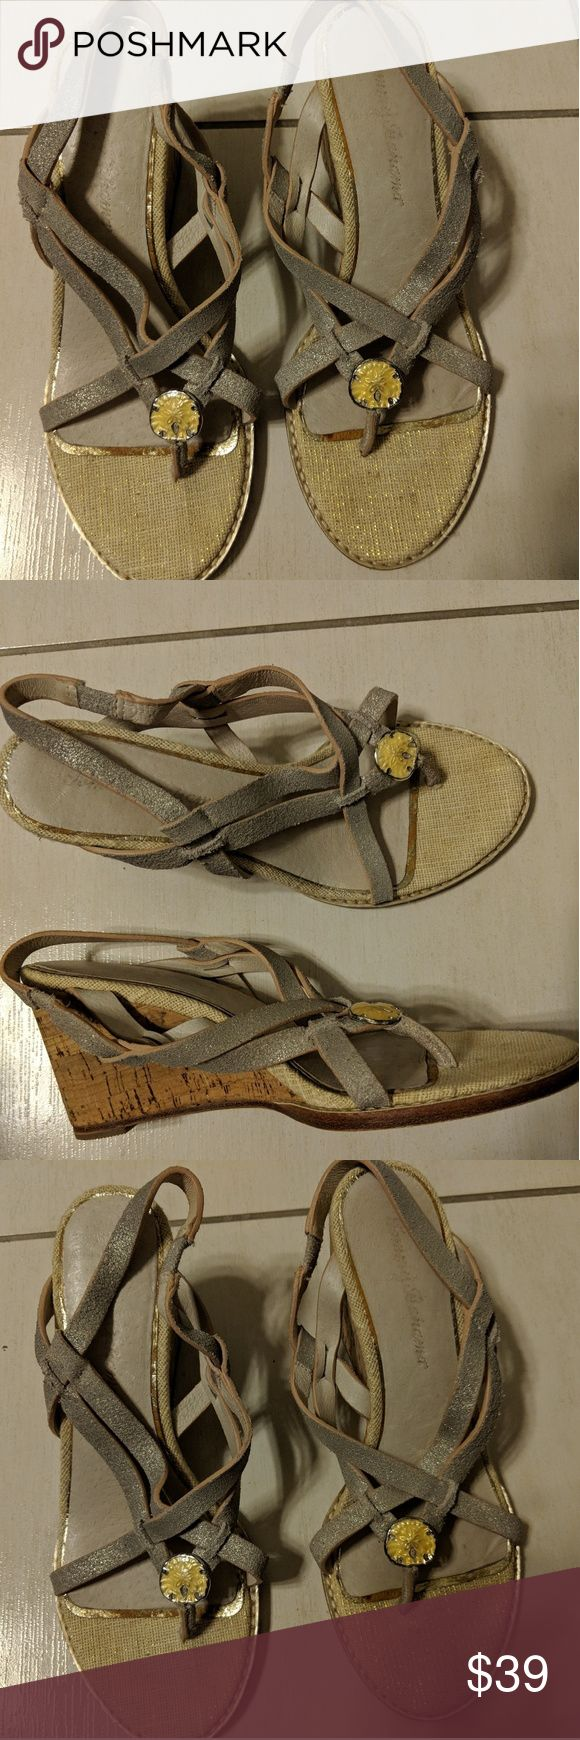 Tommy Bahama sandals Beautiful Tommy Bahama sandals, I used them a few times fo…